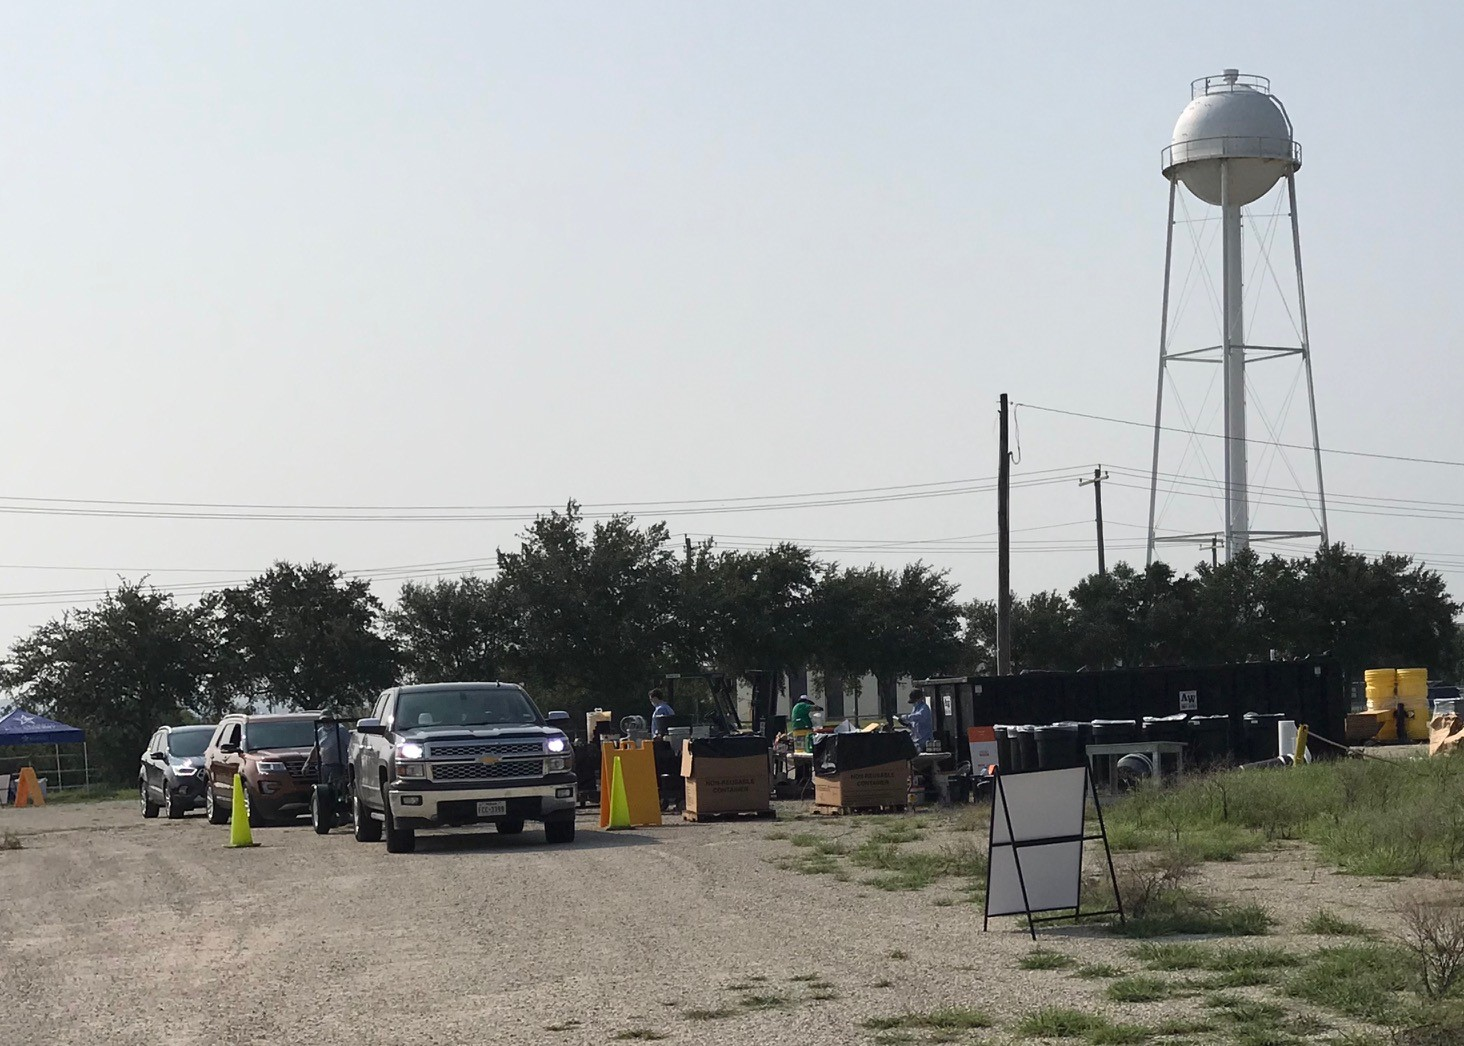 Karnes County residents participate in the River Authority's Fall Household Hazardous Waste Collection Event on September 19, 2020.